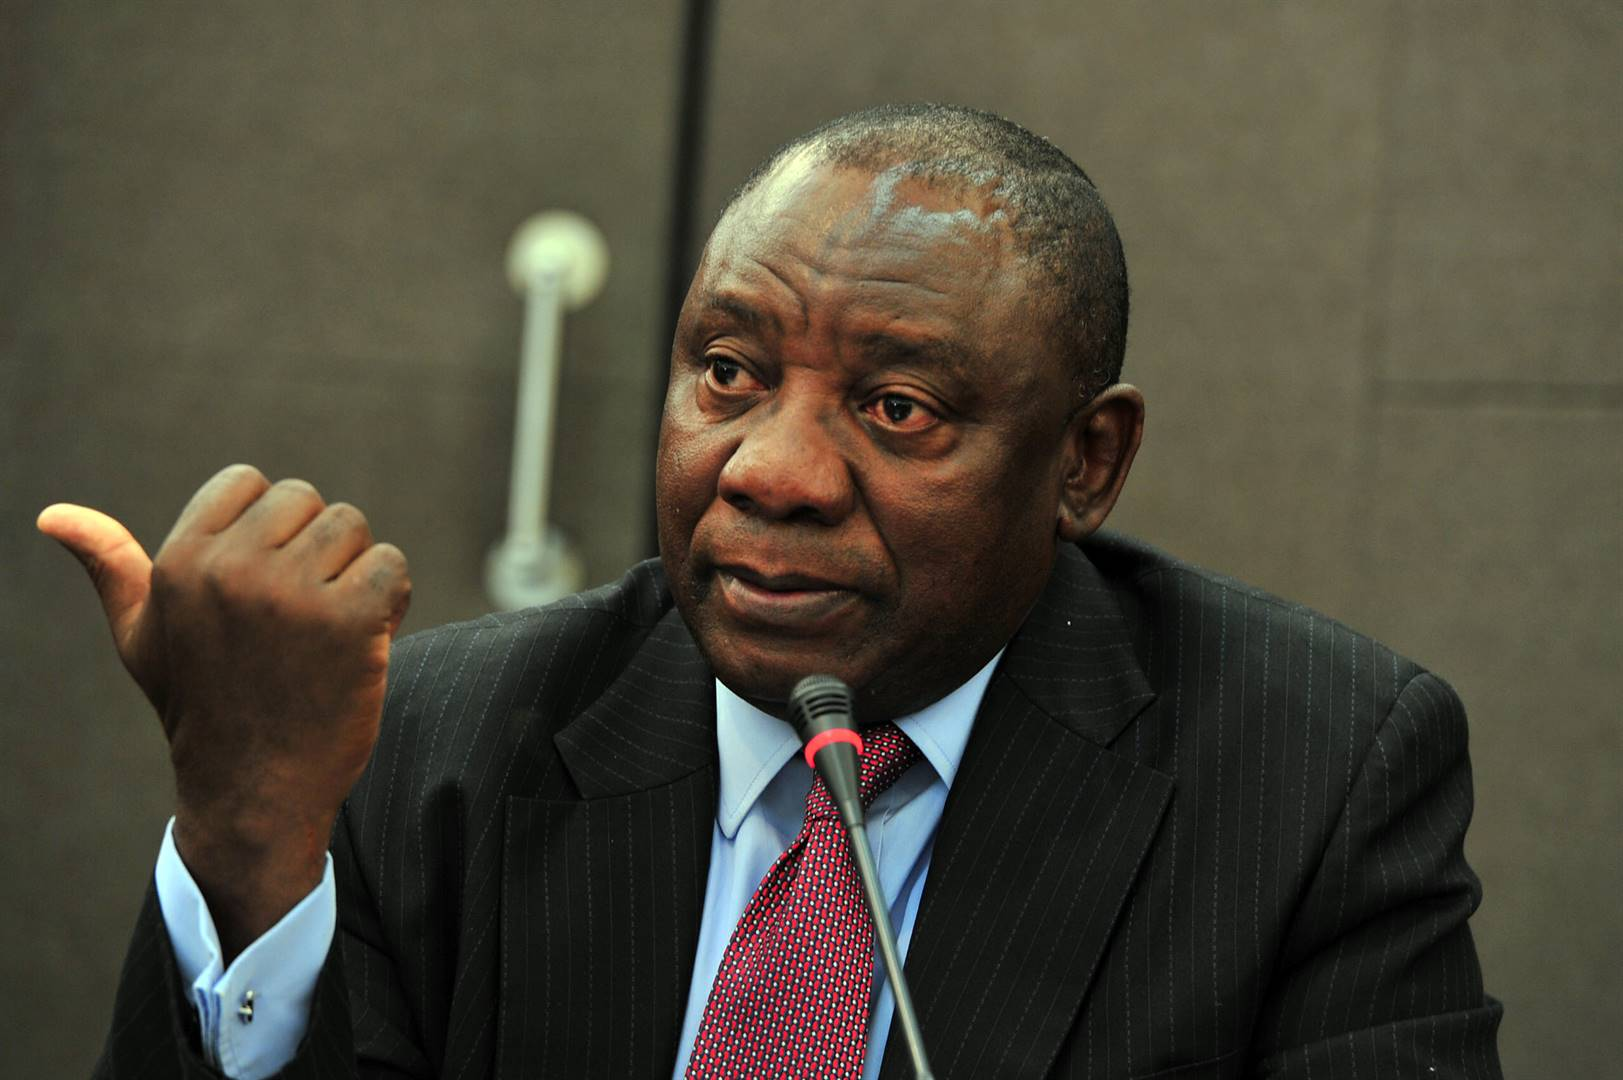 Pieter du Toit: Cyril Ramaphosa is a reluctant president and afraid to lead